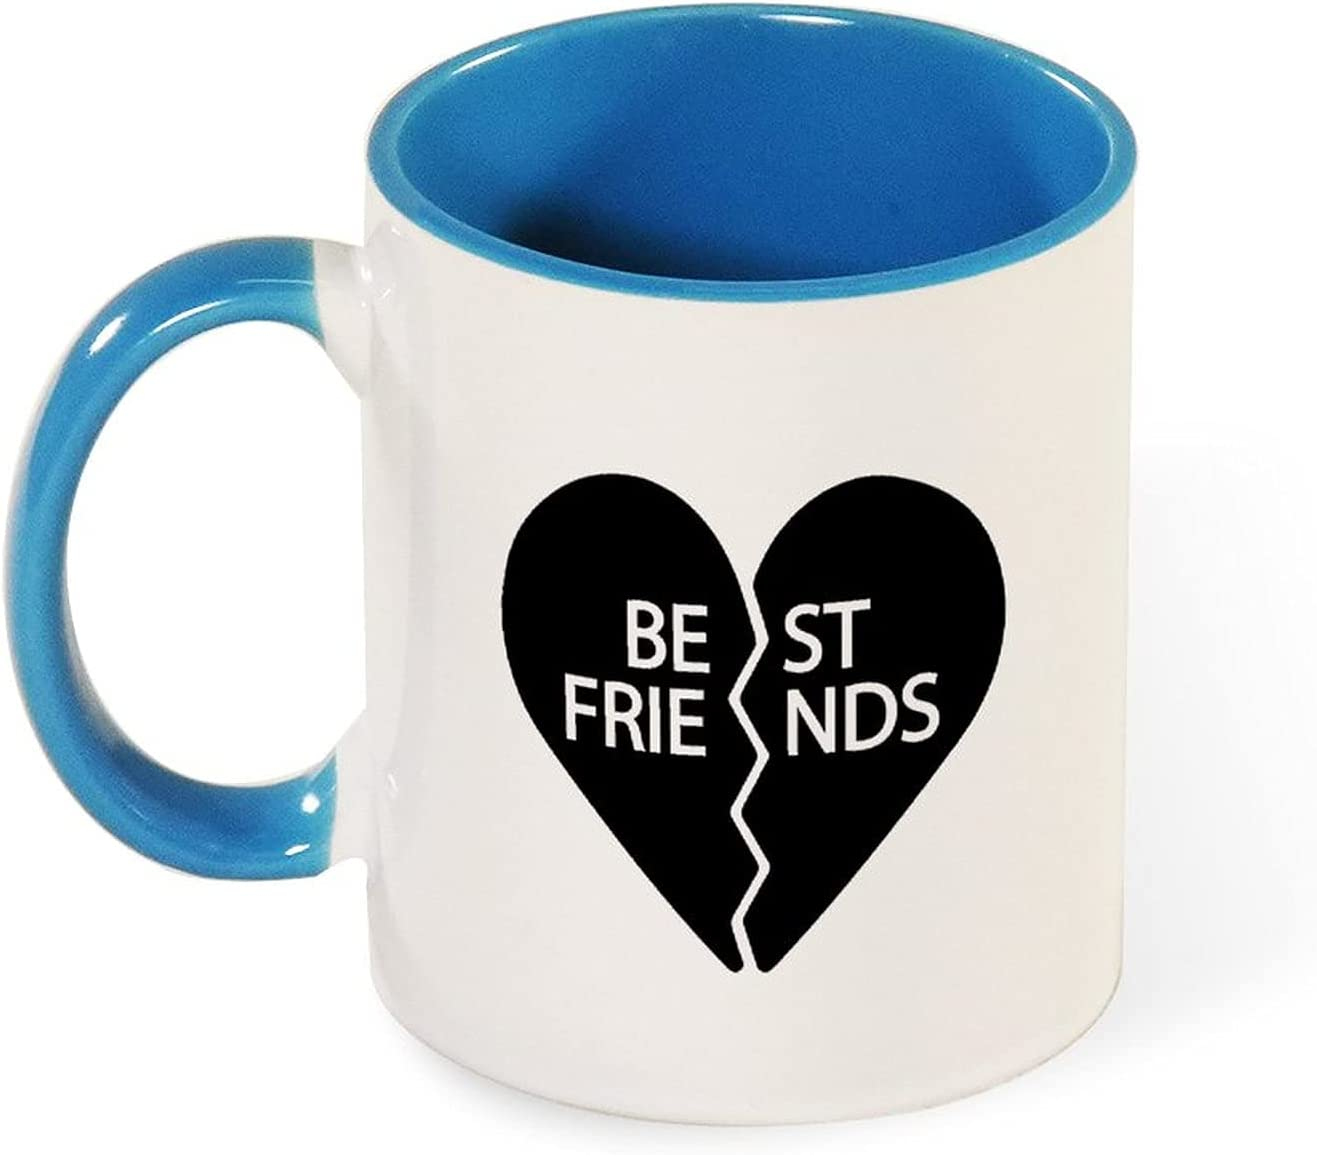 OFFicial shop Ceramic coffee cup ceramic Fort Worth Mall hot for chocolat suitable